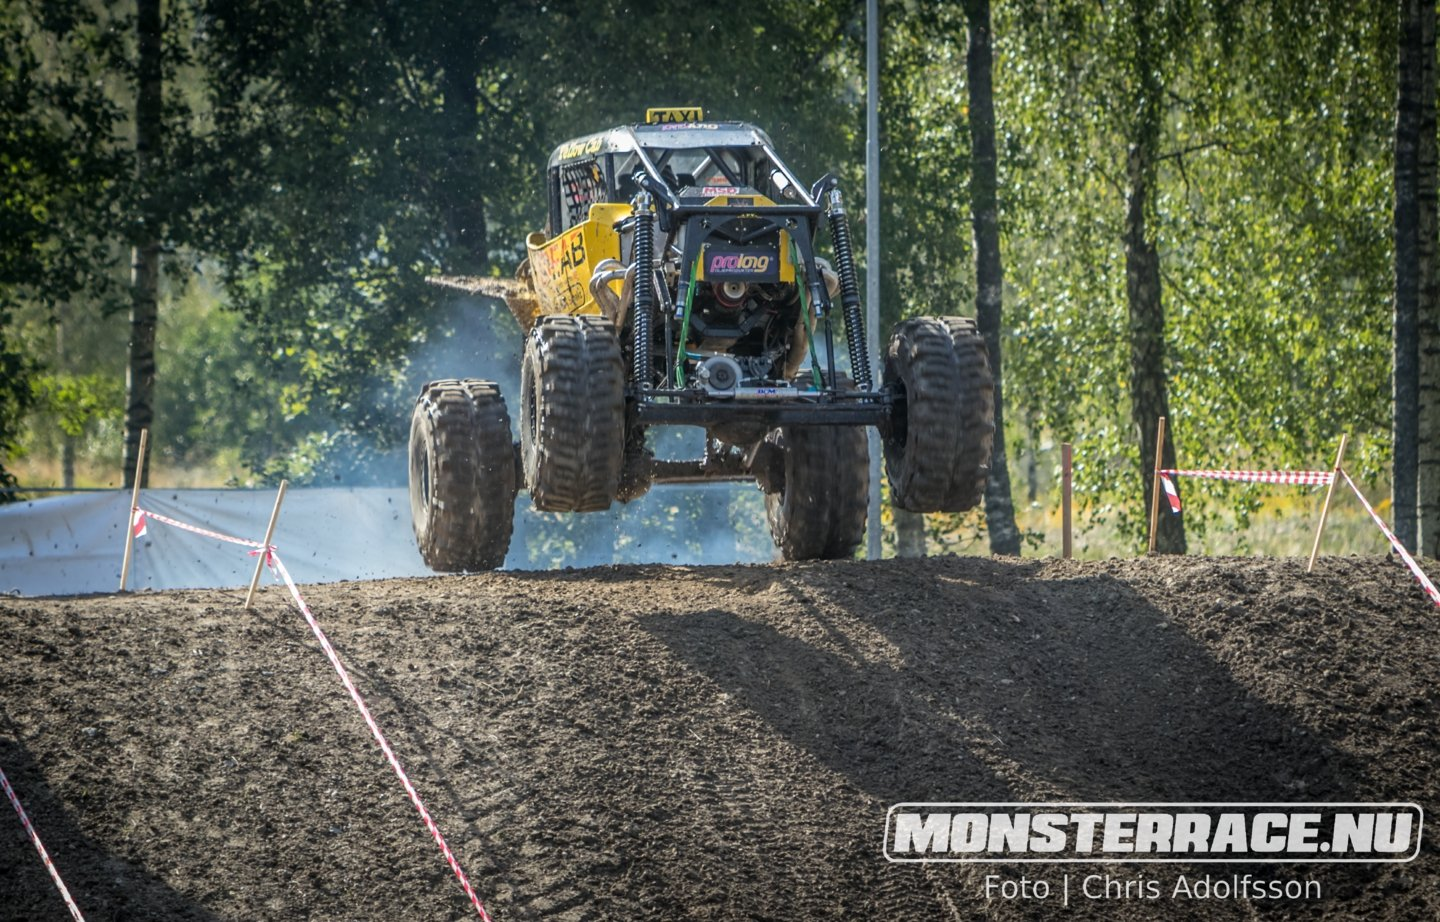 Monsterrace Ed dag 1 (242)